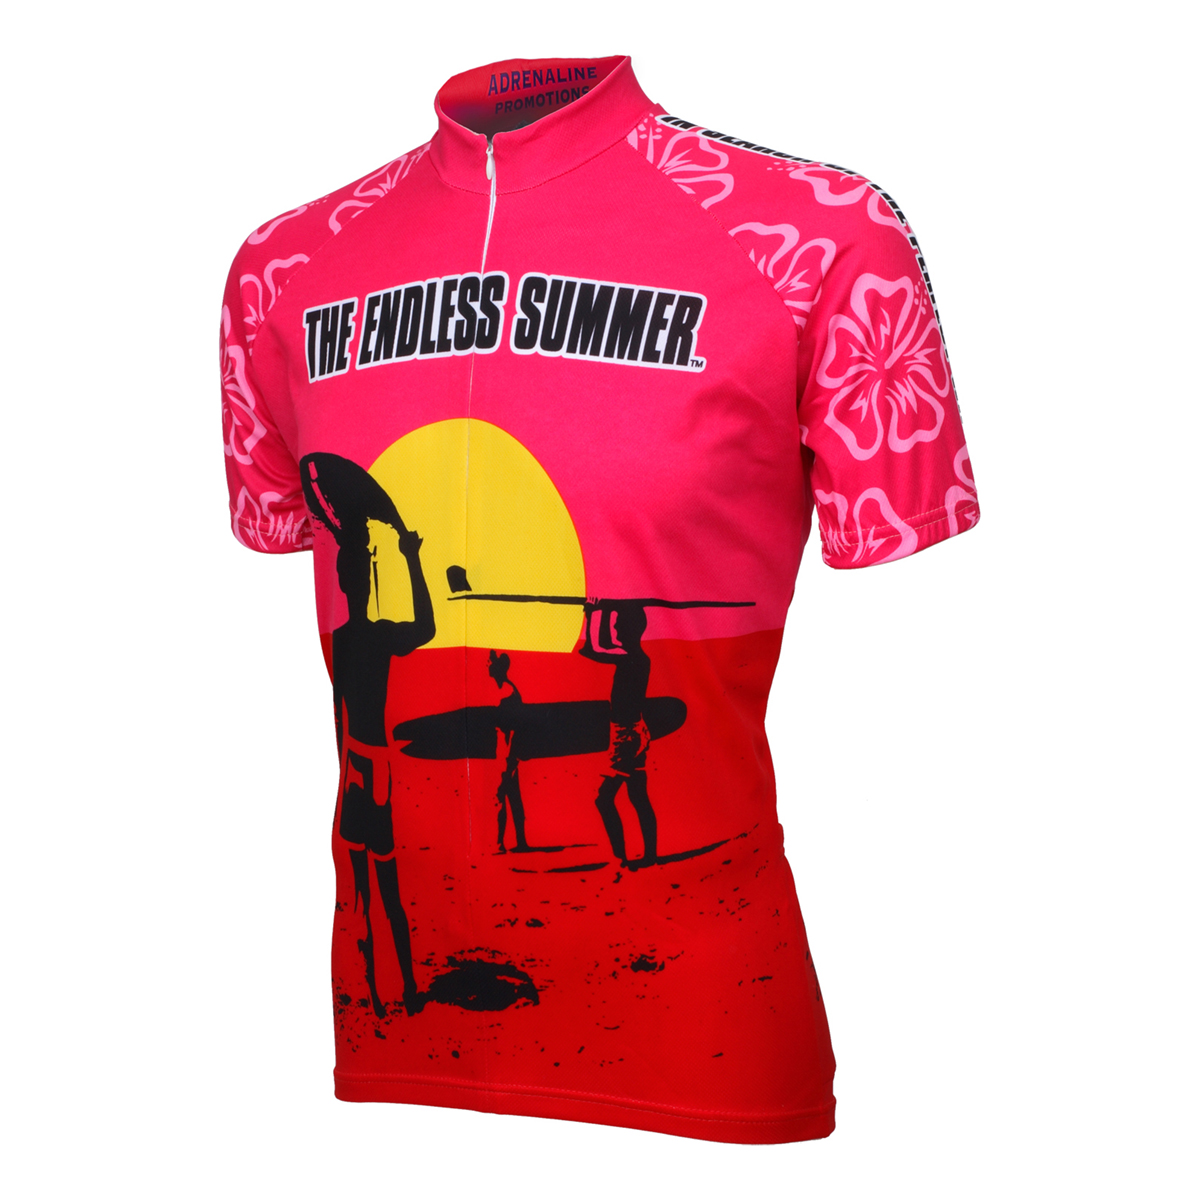 Adrenaline Promotions Endless Summer Cycling Jersey